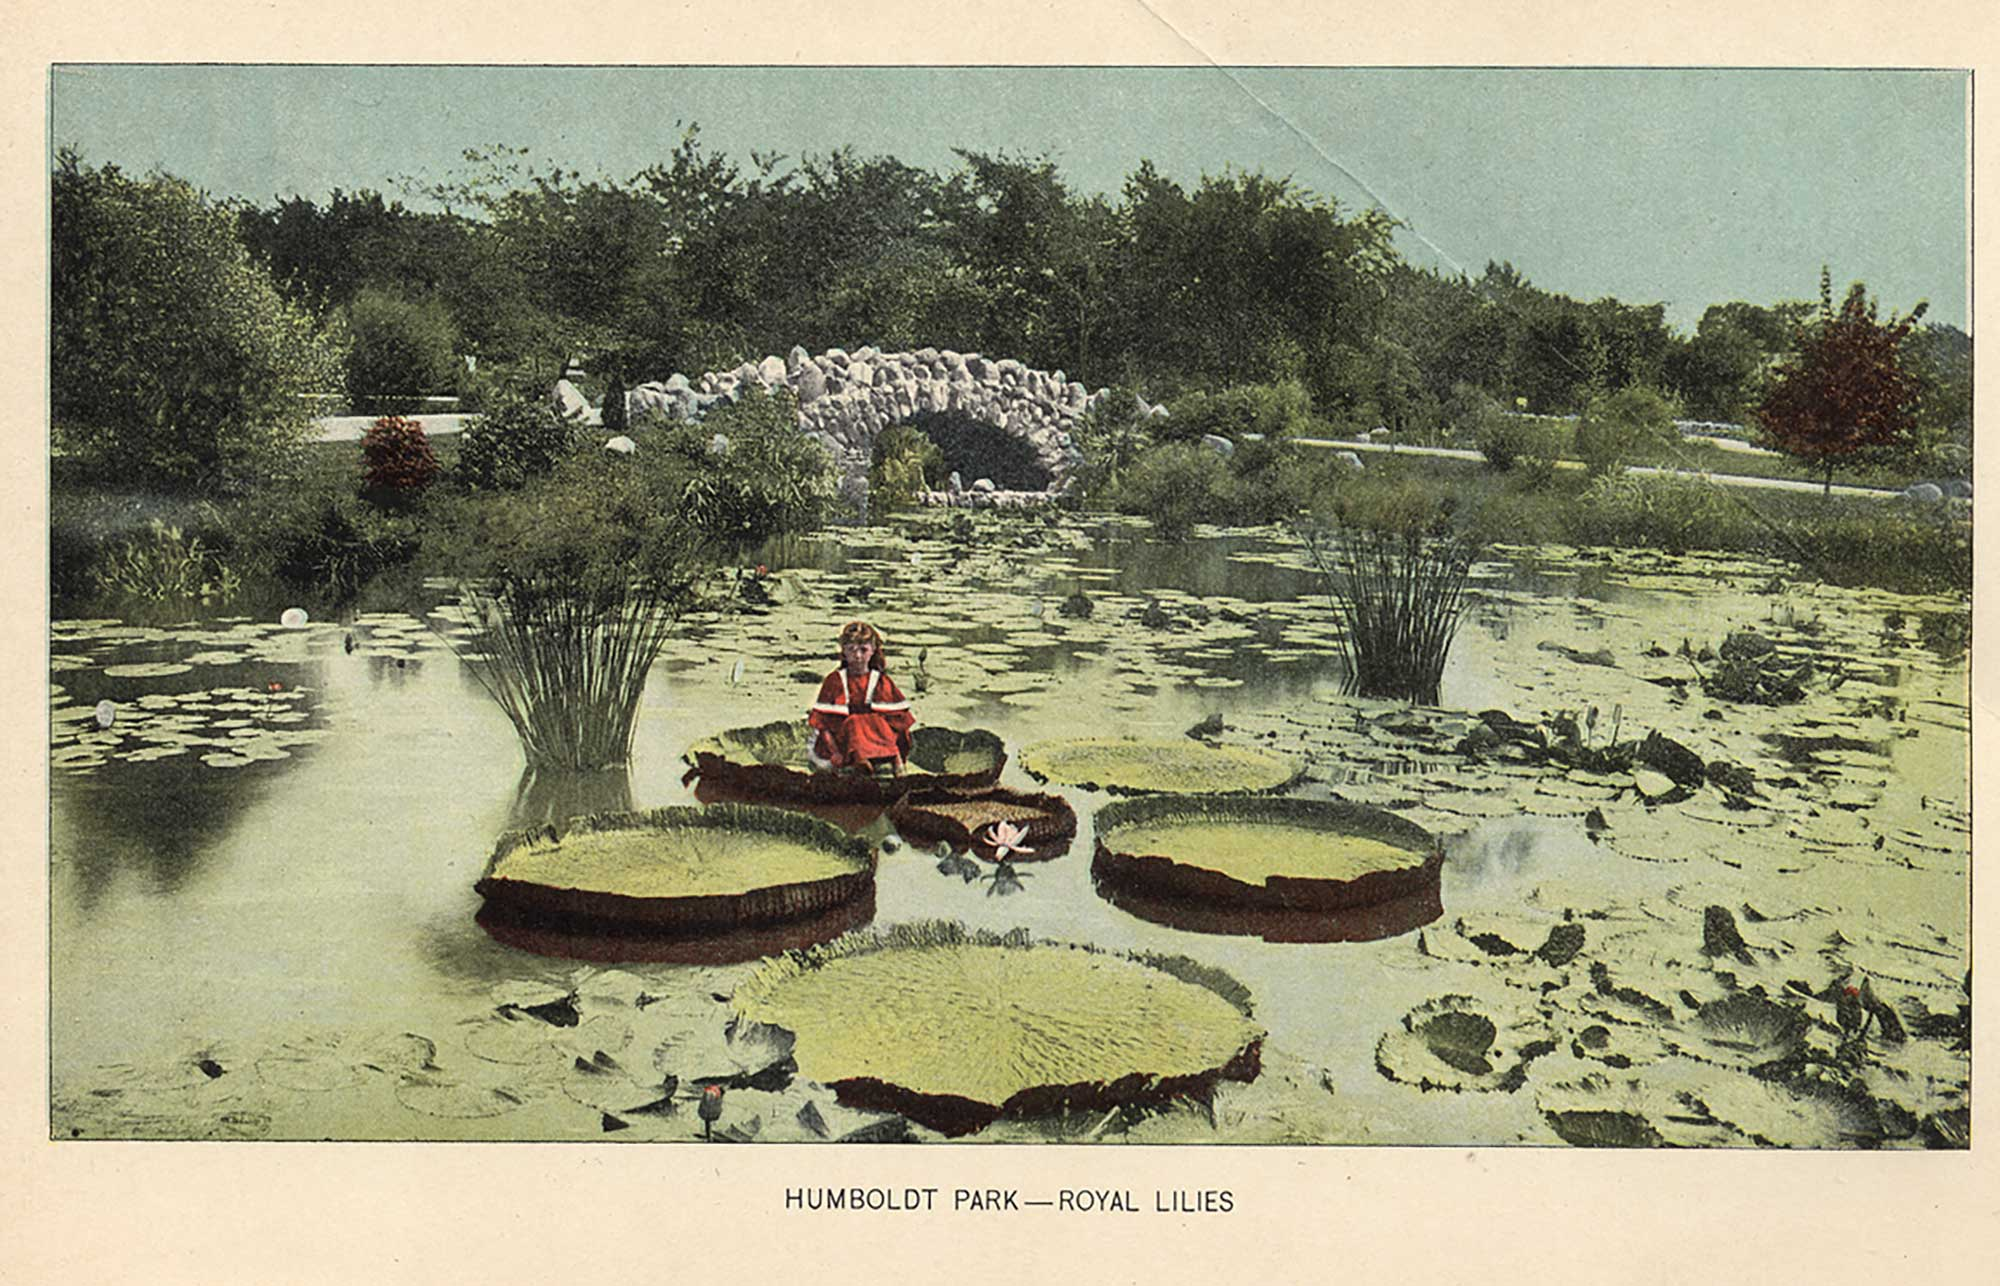 This photograph depicts Jensen's daughter Katherine Jensen sitting on a royal lily in the lily pond. 1899,  Thirty-First Annual Report of West Chicago Park Commissioners